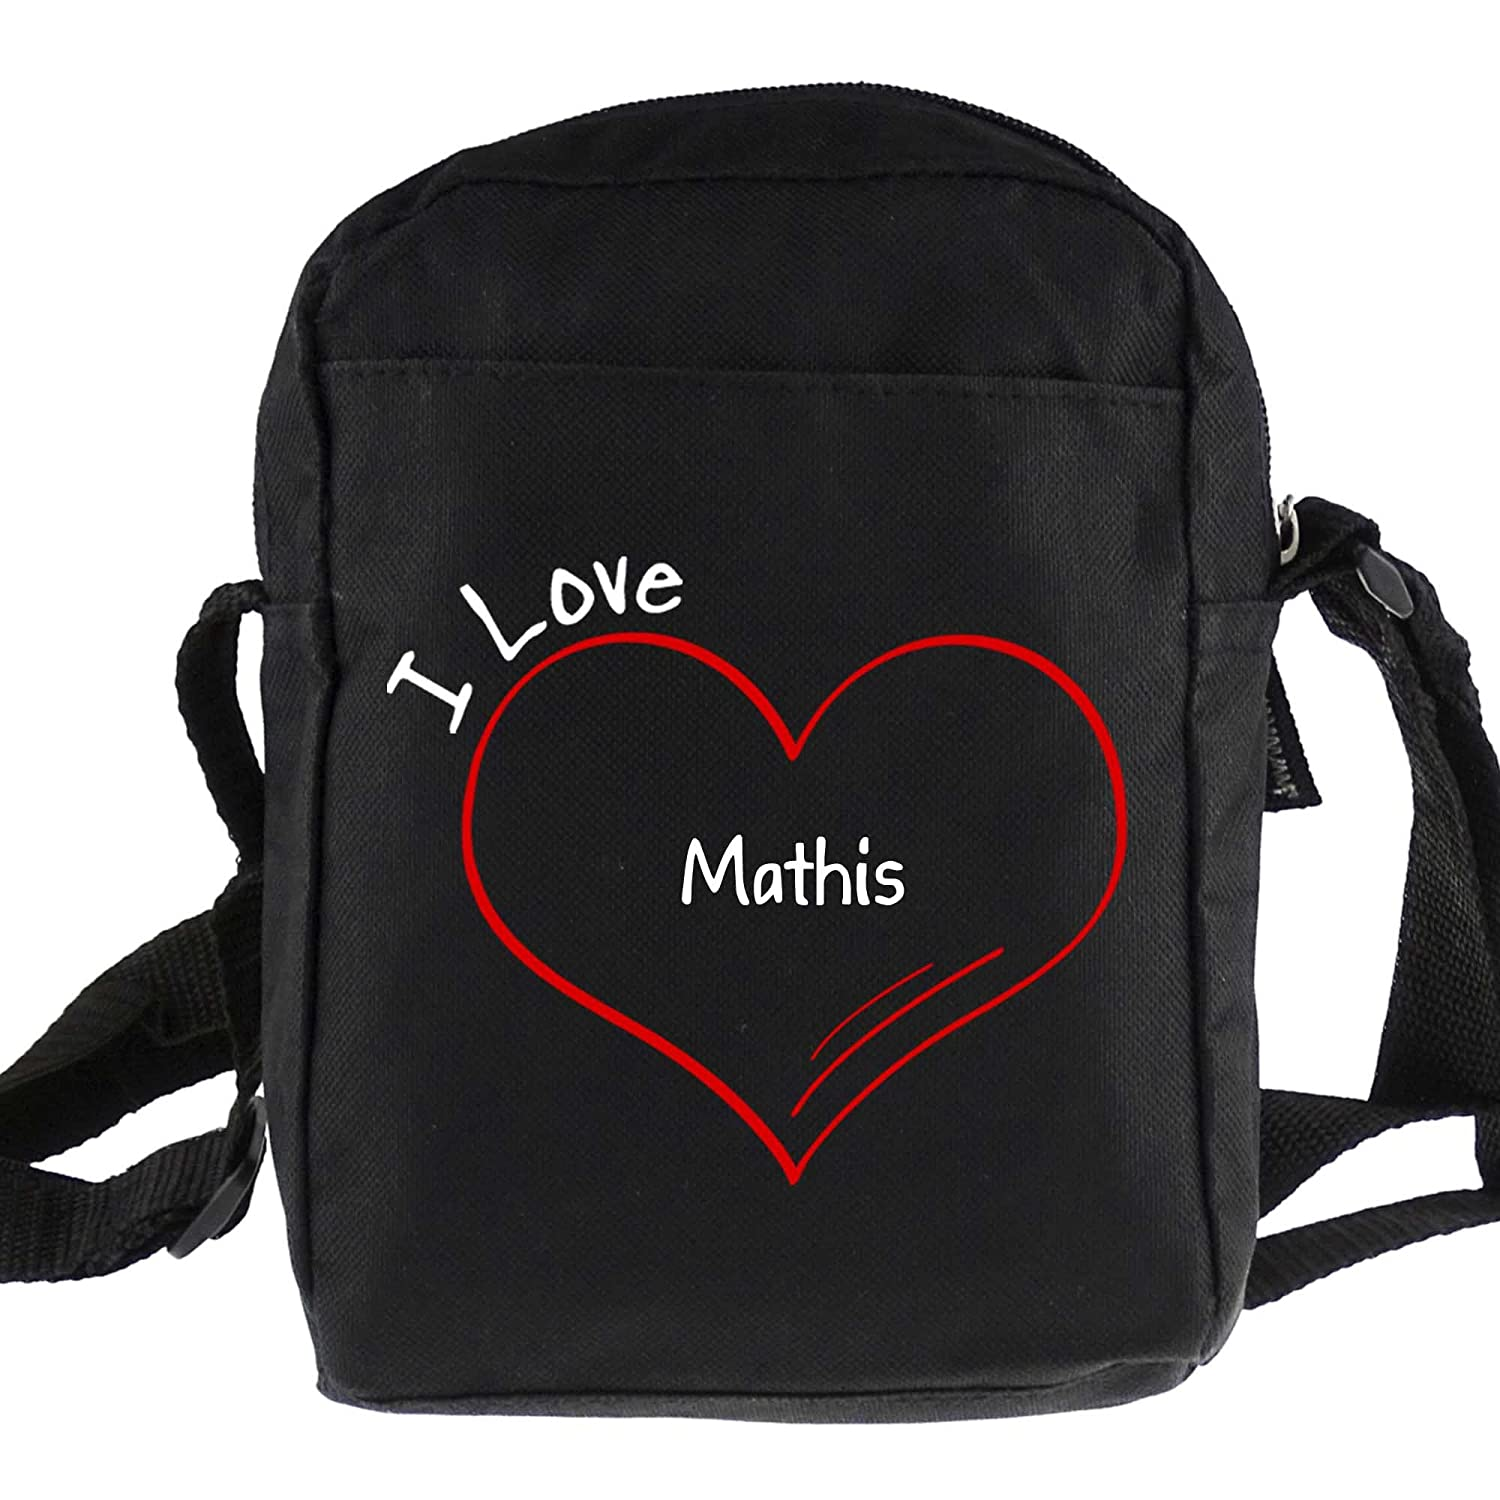 Modern I Love Mathis Black Shoulder Bag